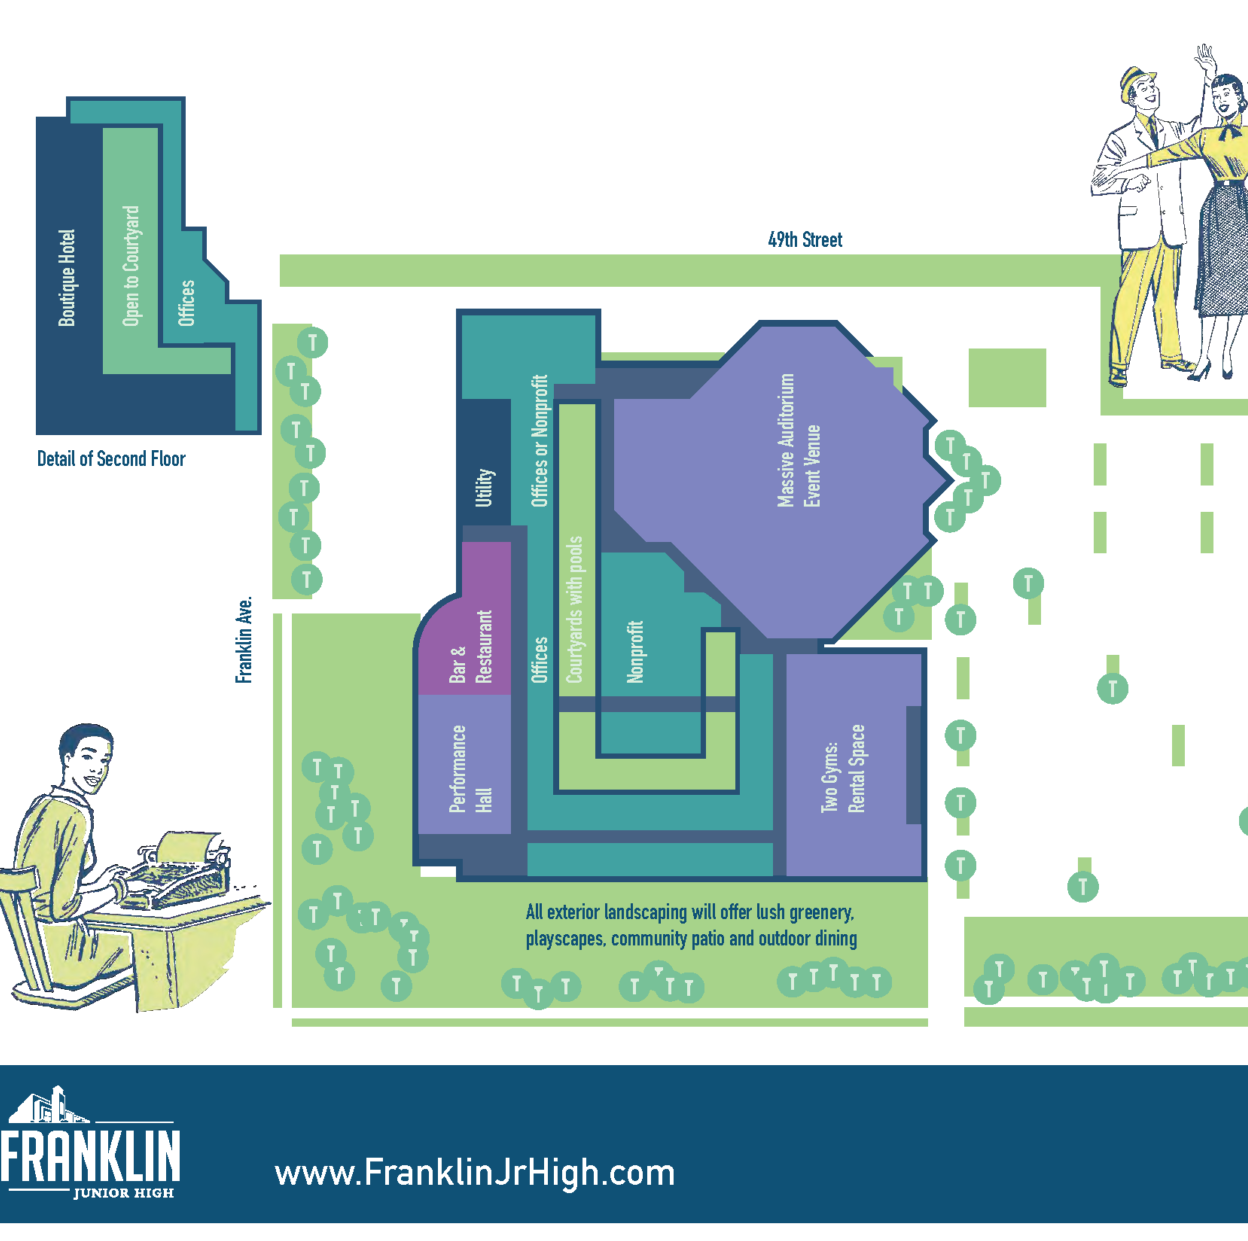 Des Moines delays vote on Franklin Junior High hotel, restaurant project